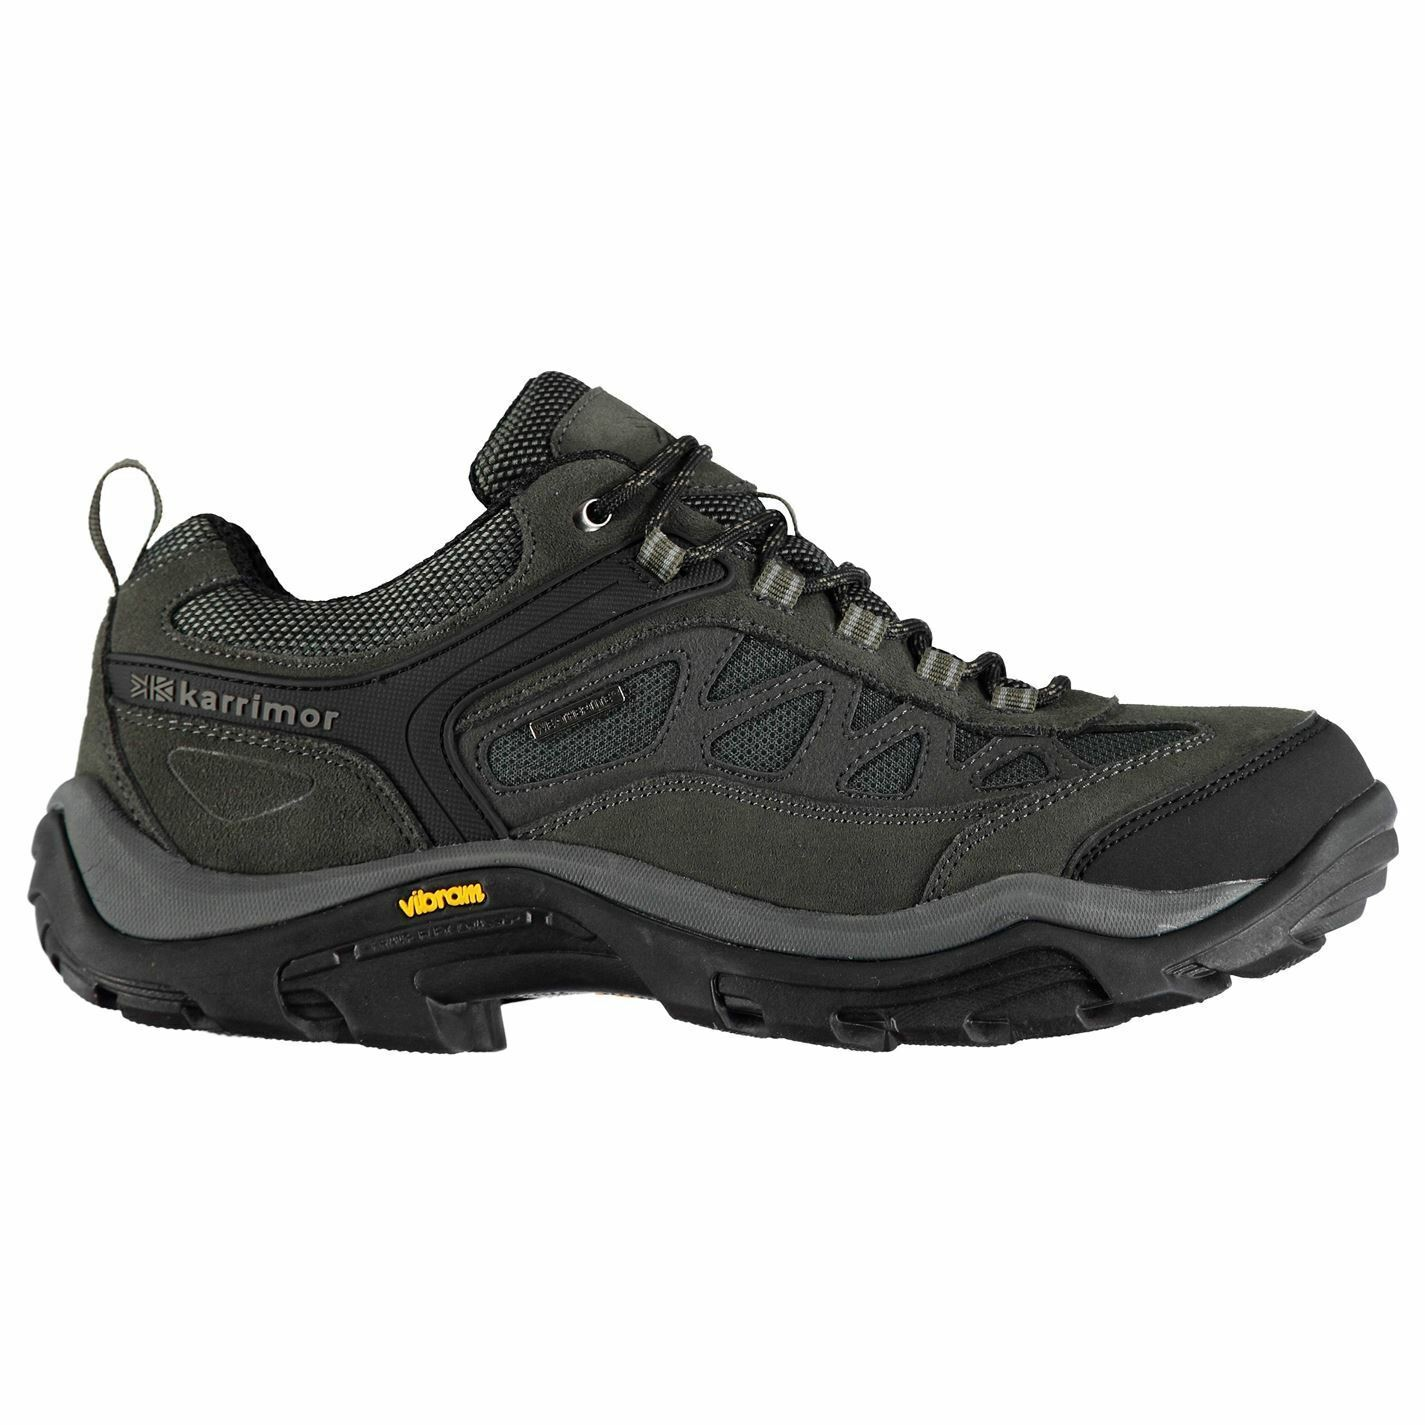 Karrimor Aspen Low Walking shoes Mens Grey Hiking Boots Footwear